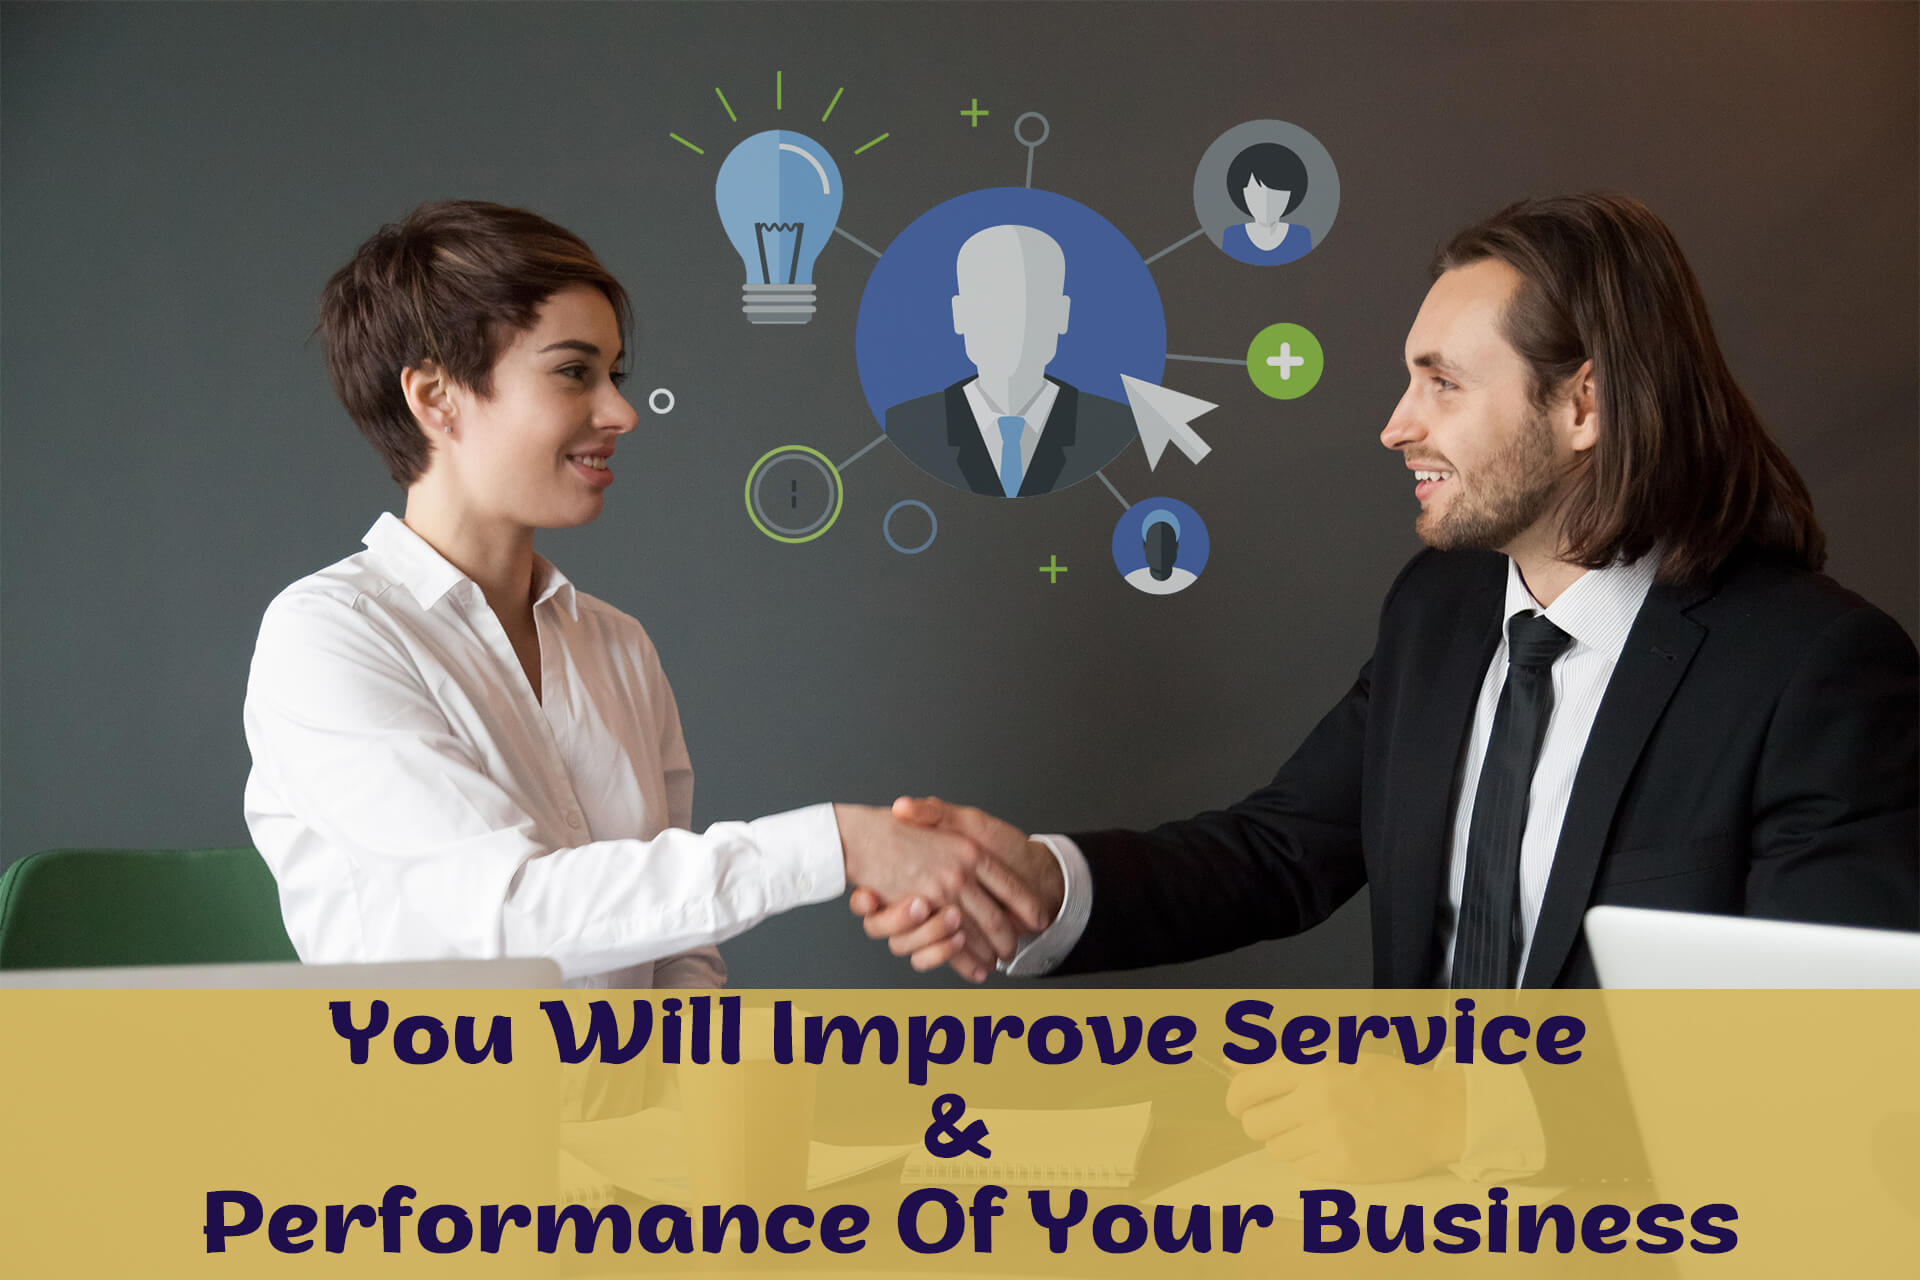 You can improve services and performance of your business by outsourcing